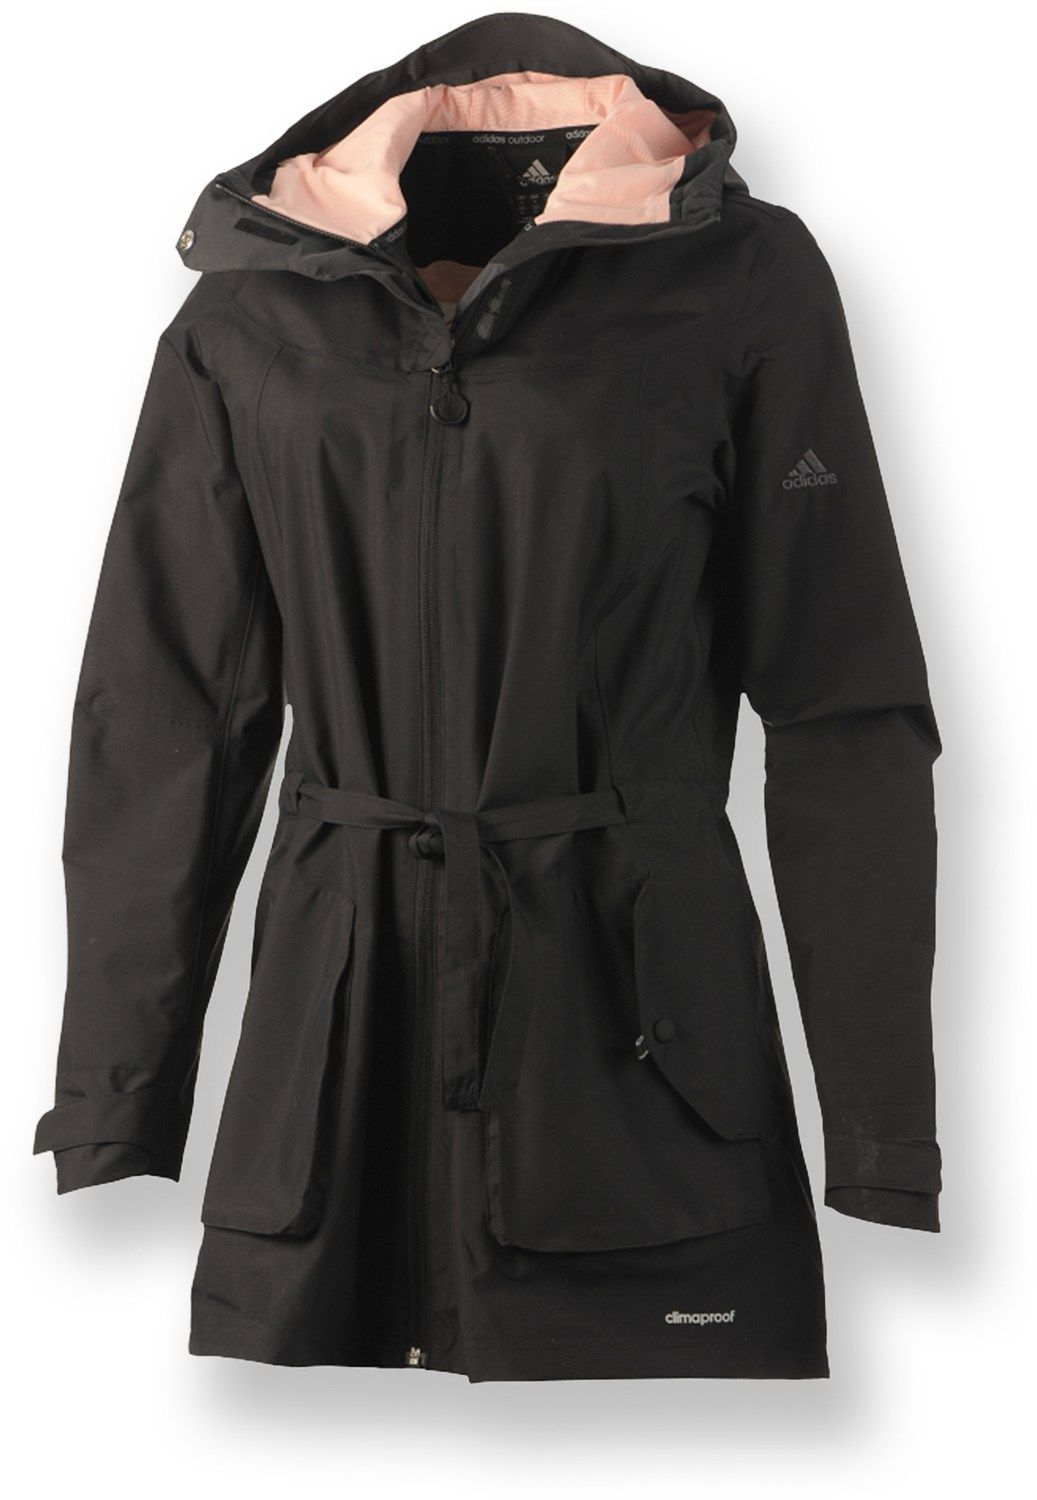 adidas Hiking CPS Rain Jacket - Women's - 2014 Closeout - Free Shipping at REI-OUTLET.com